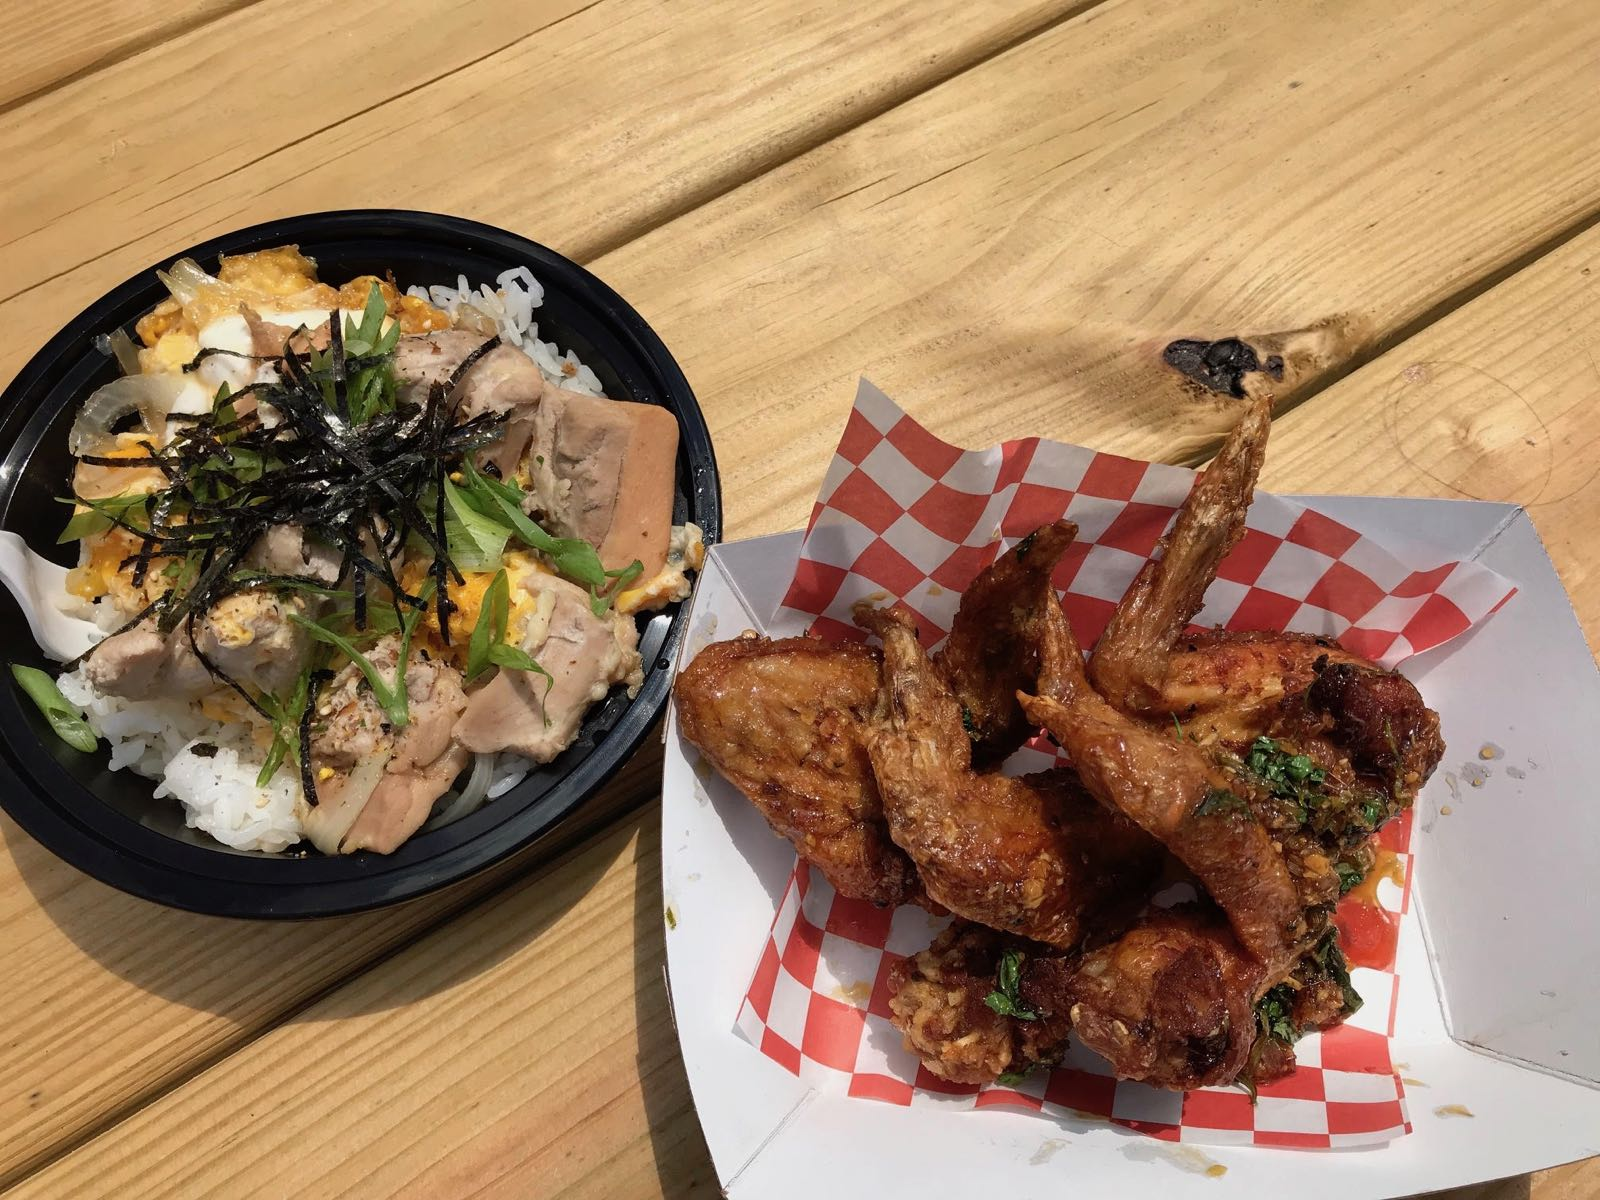 First look: Zocalo, the city's premiere food truck park